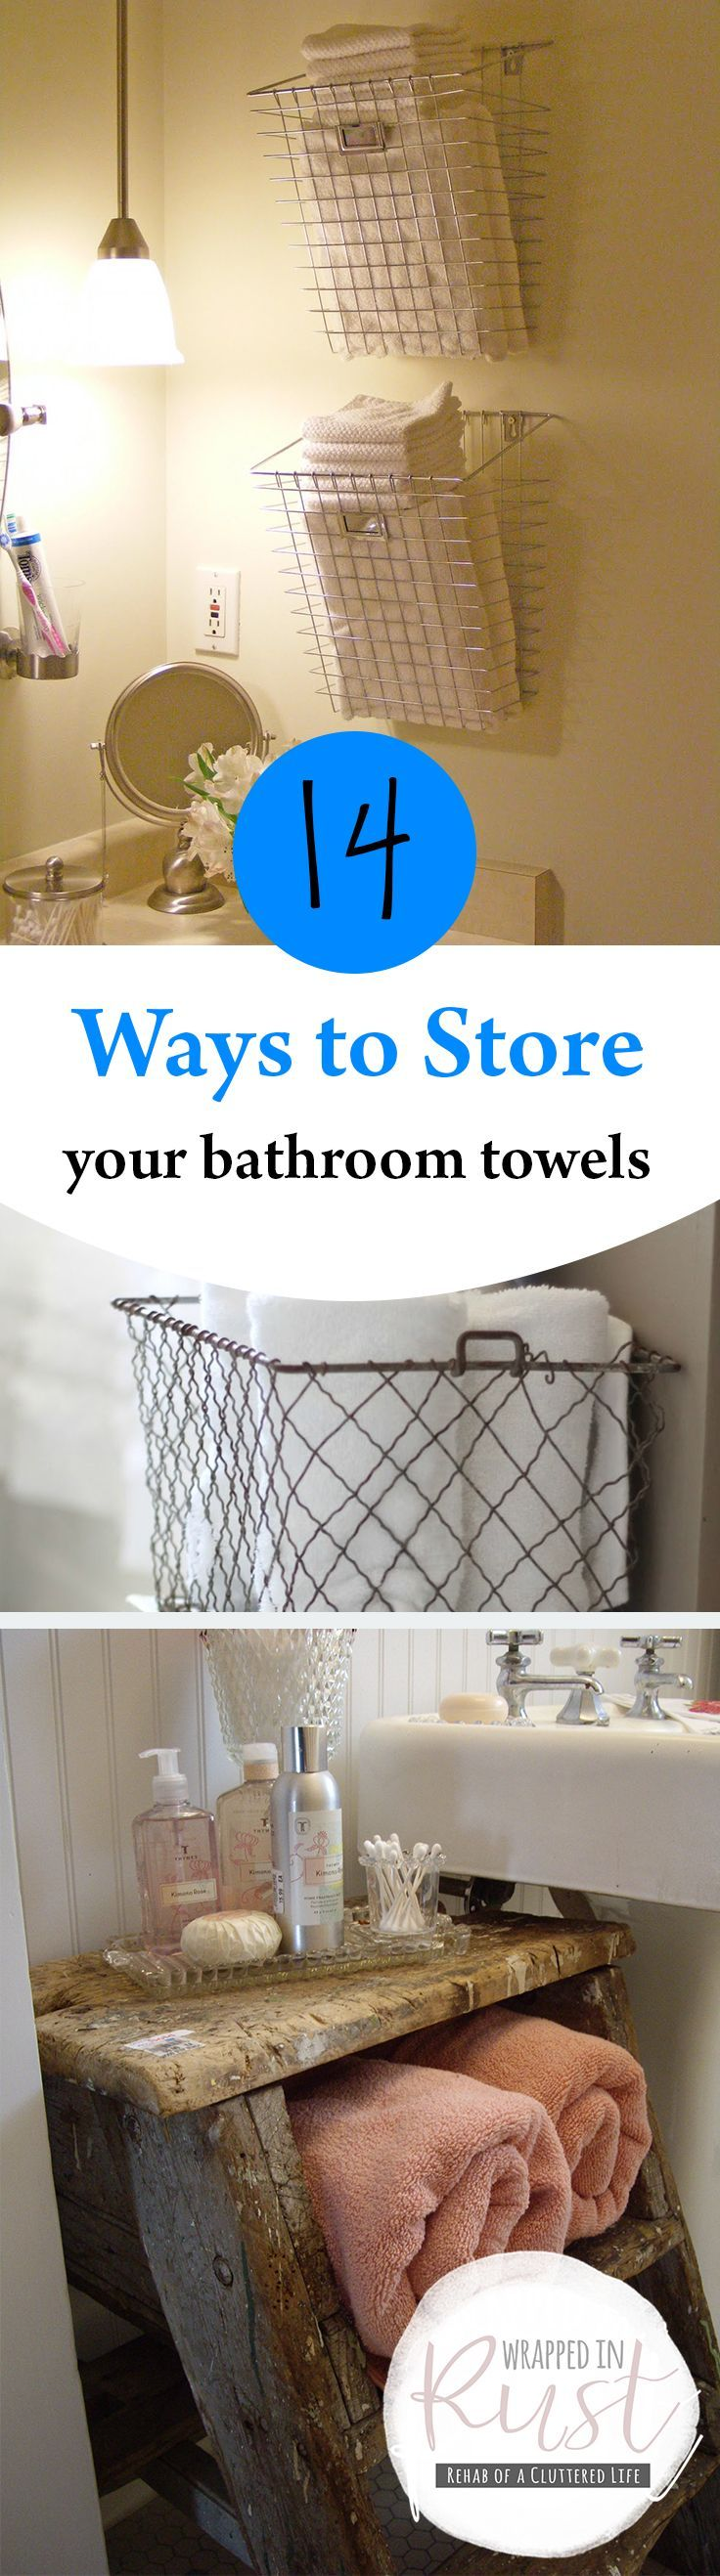 Best Decorative Bathroom Towels Ideas On Pinterest Towel - Embellished towels for small bathroom ideas